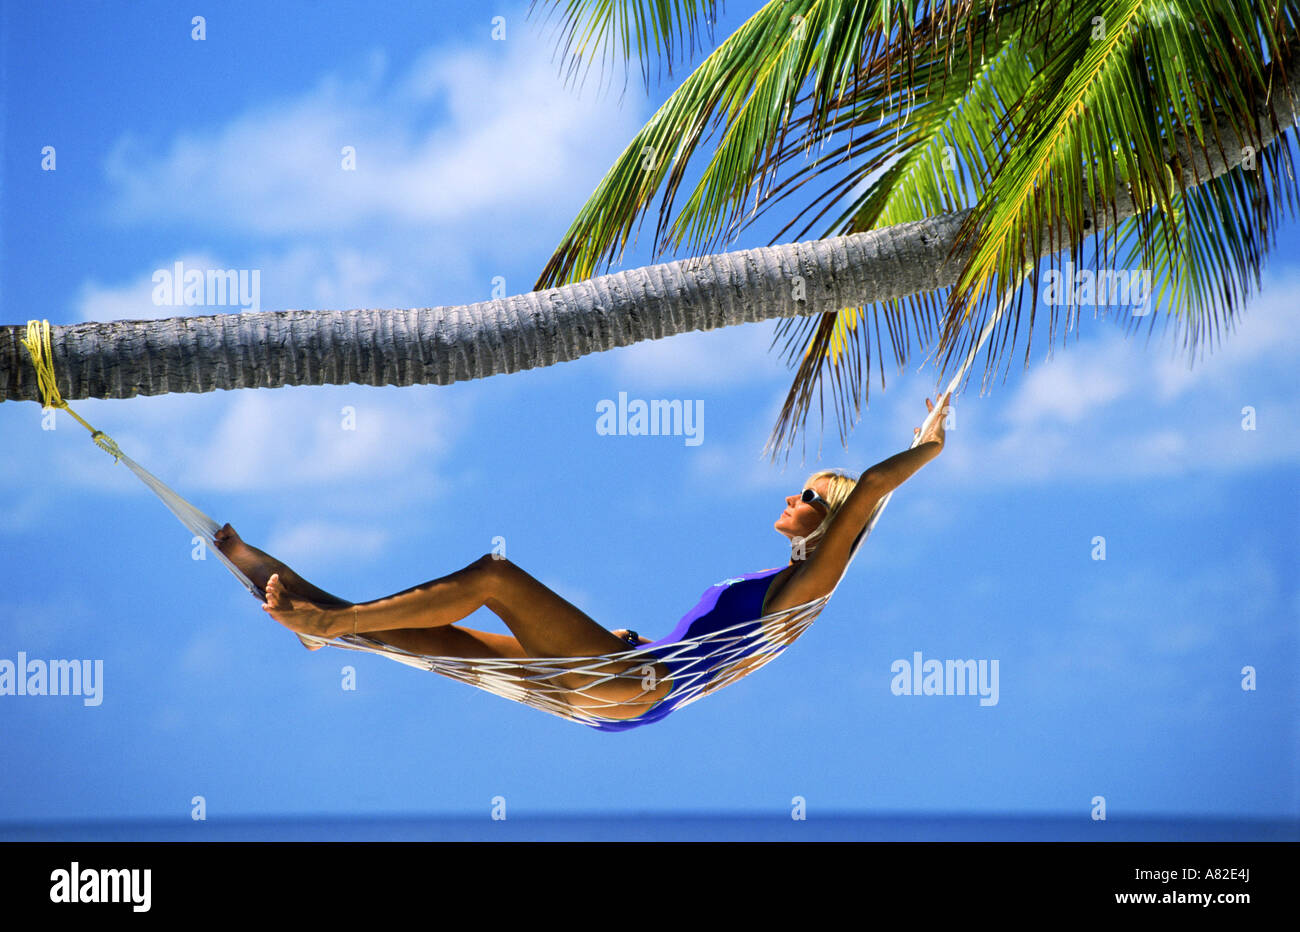 Woman with sunglasses relaxing in hammock under palm tree, wispy clouds and blue skies - Stock Image